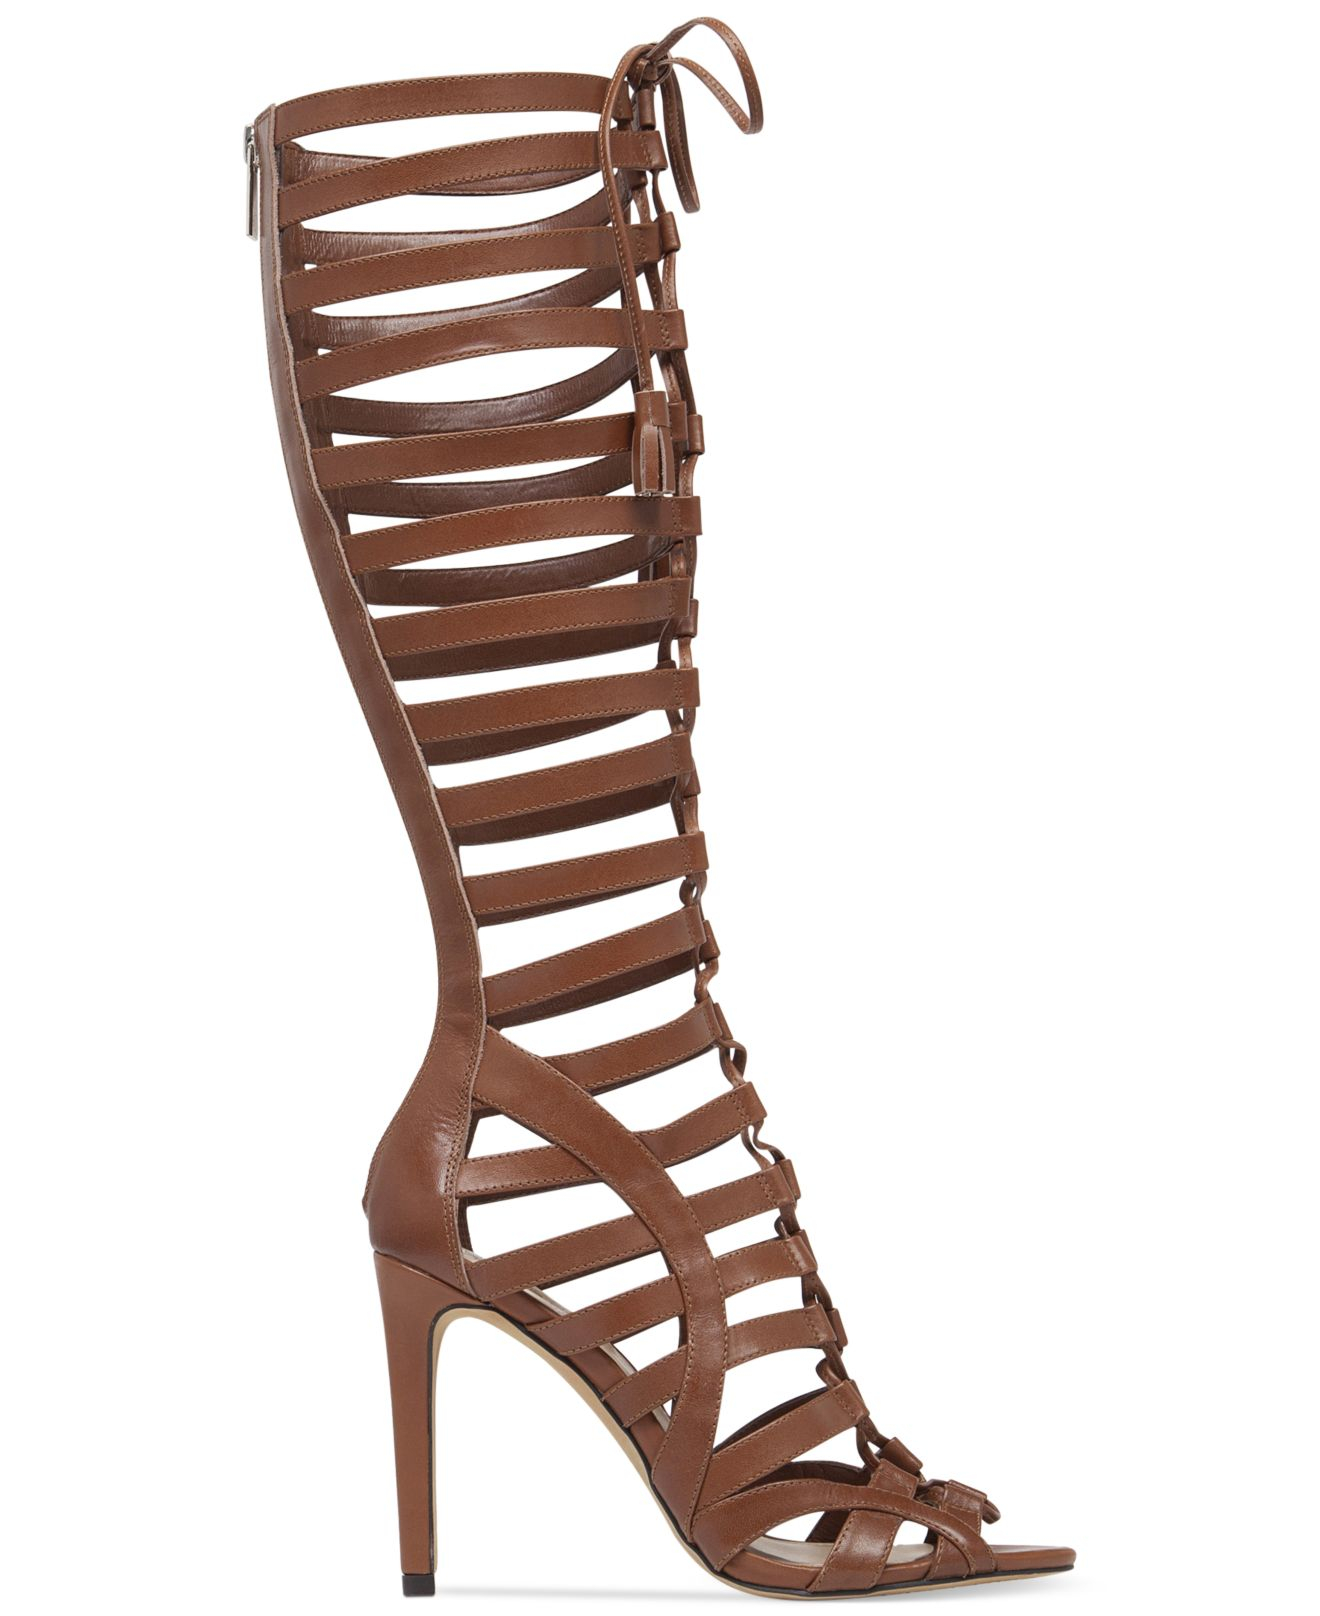 Vince Camuto Olivian Tall Lace Up Gladiator Sandals In